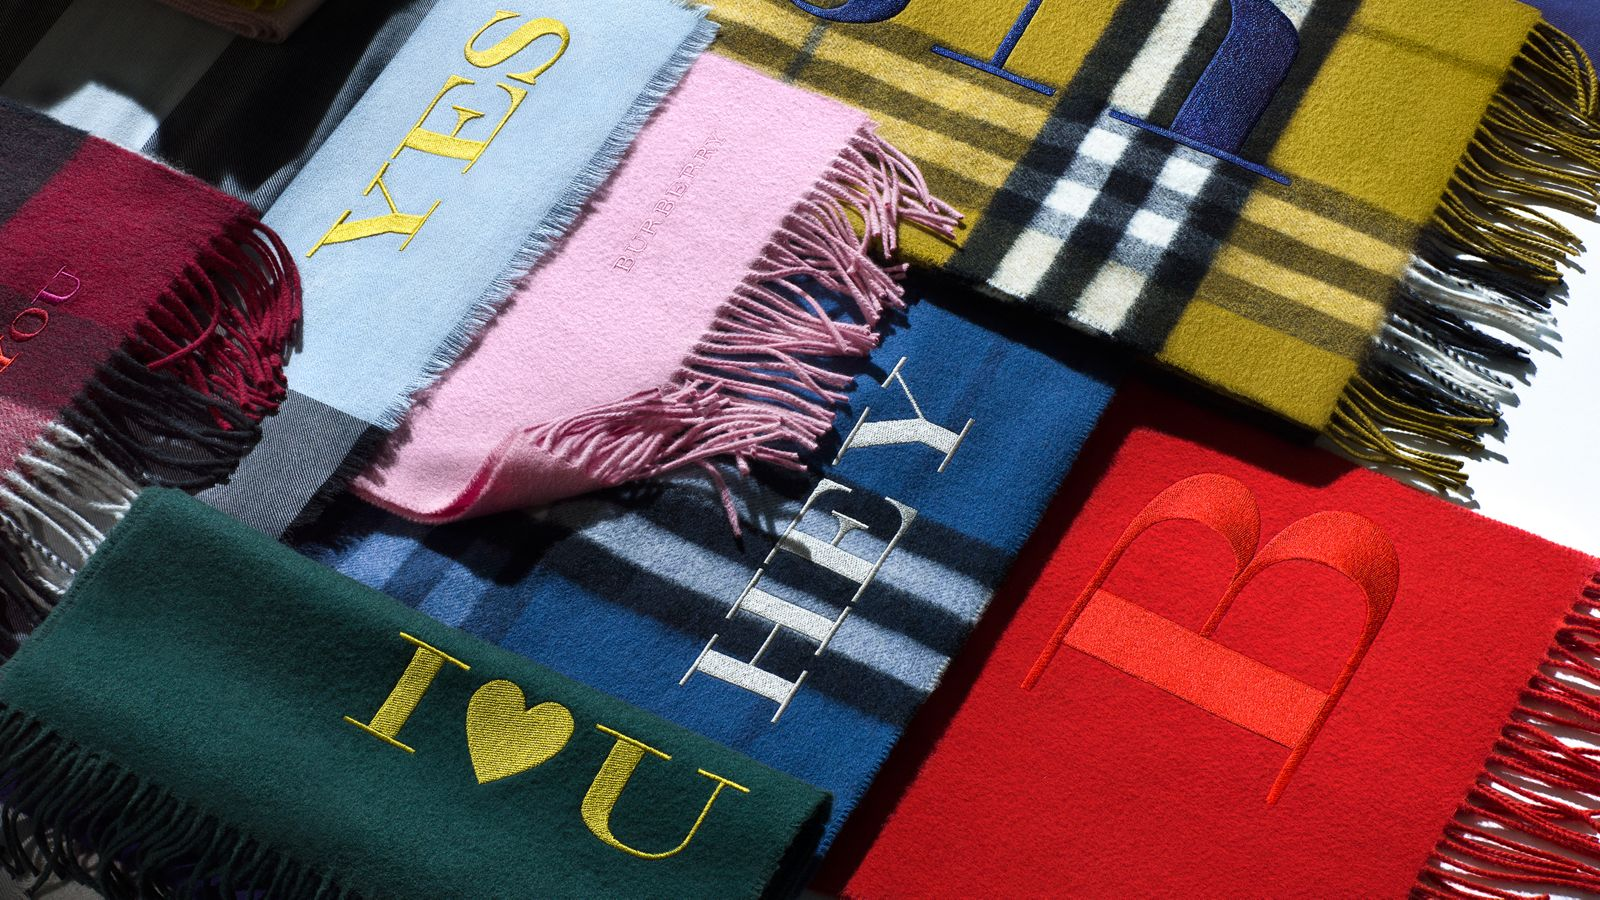 Our cashmere scarf, your initials